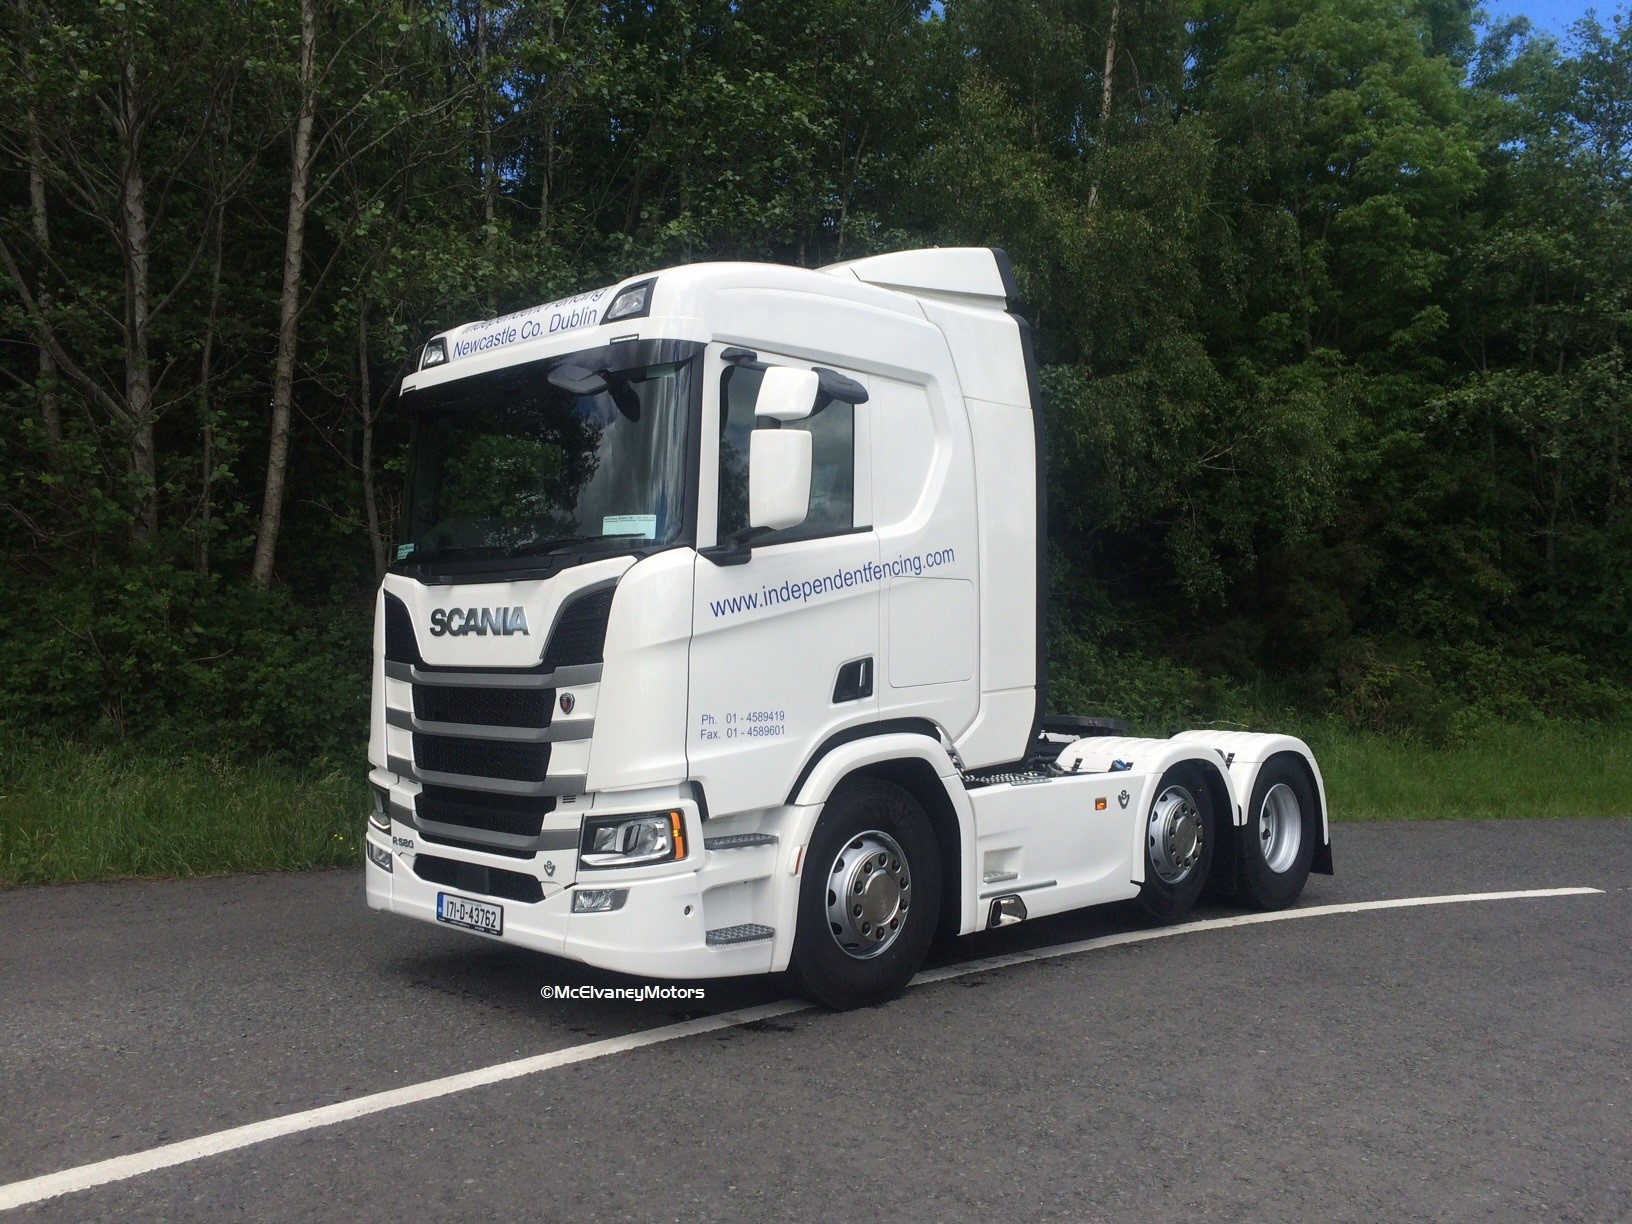 New Generation Scania for Independent Fencing